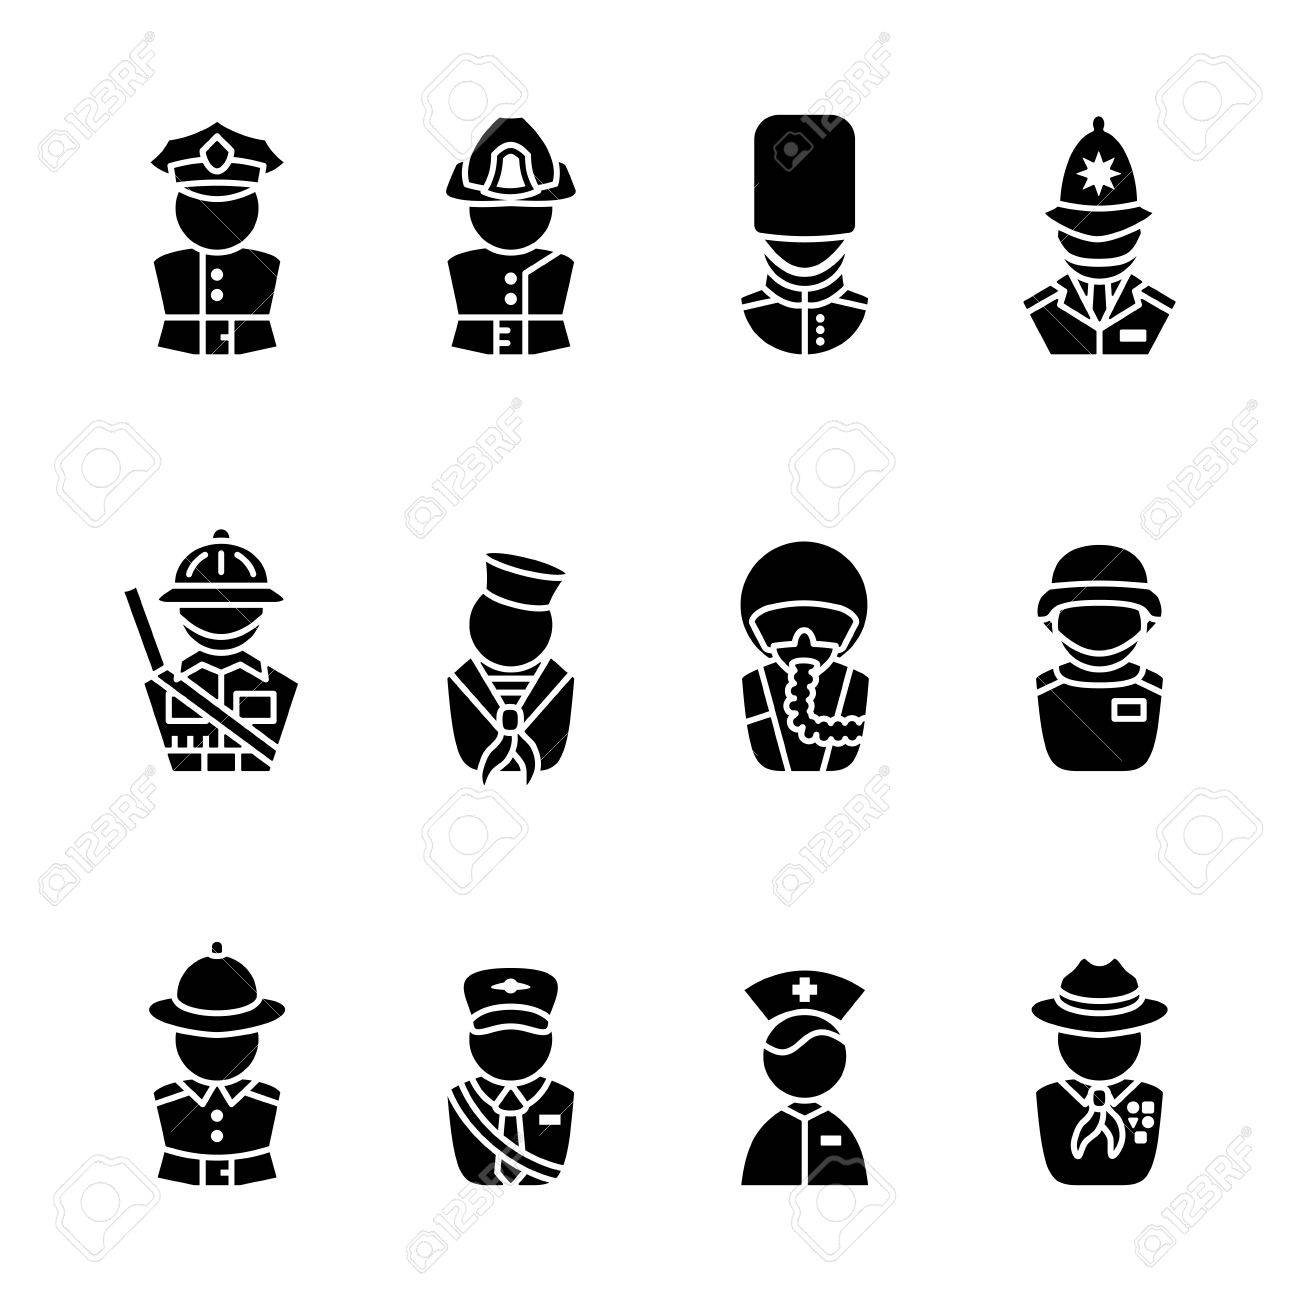 computer icon set Stock Vector - 16268673